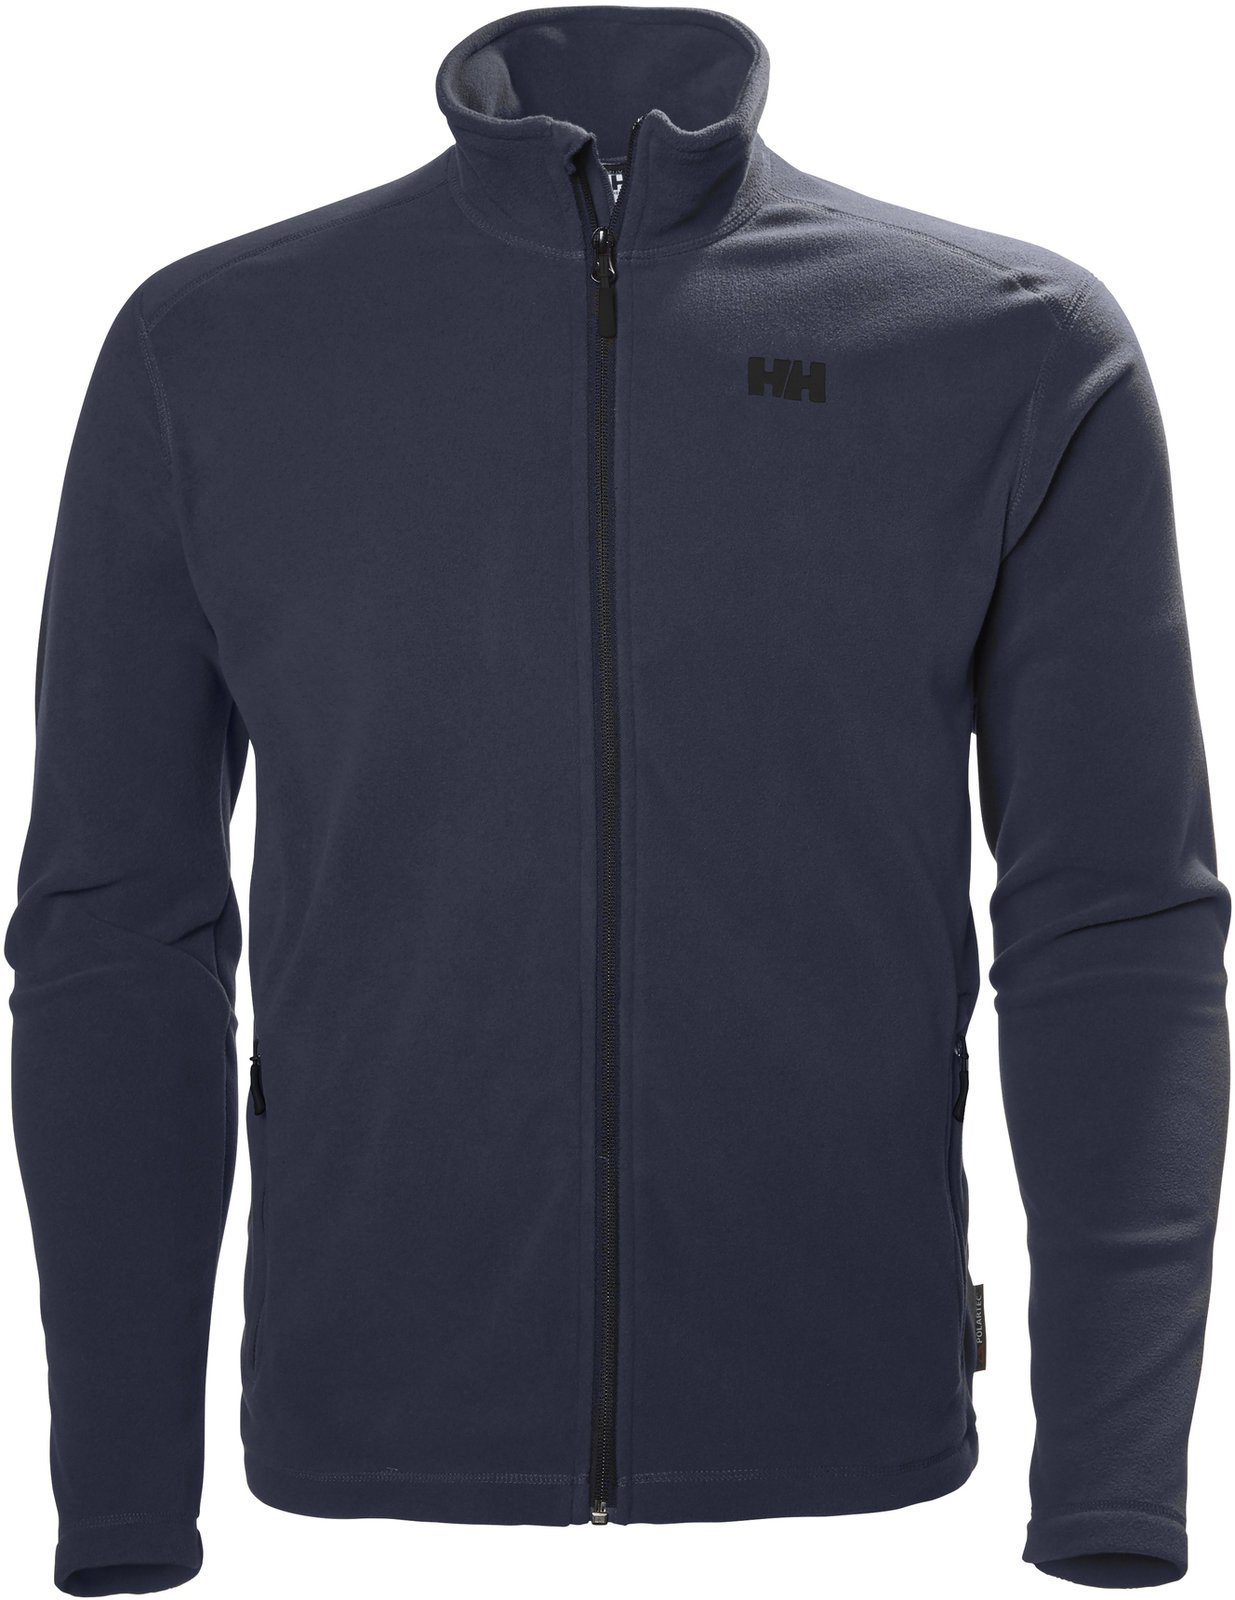 Helly Hansen Daybreaker Fleece Jacket Sailing Jacket Graphite Blue 2XL de Helly Hansen